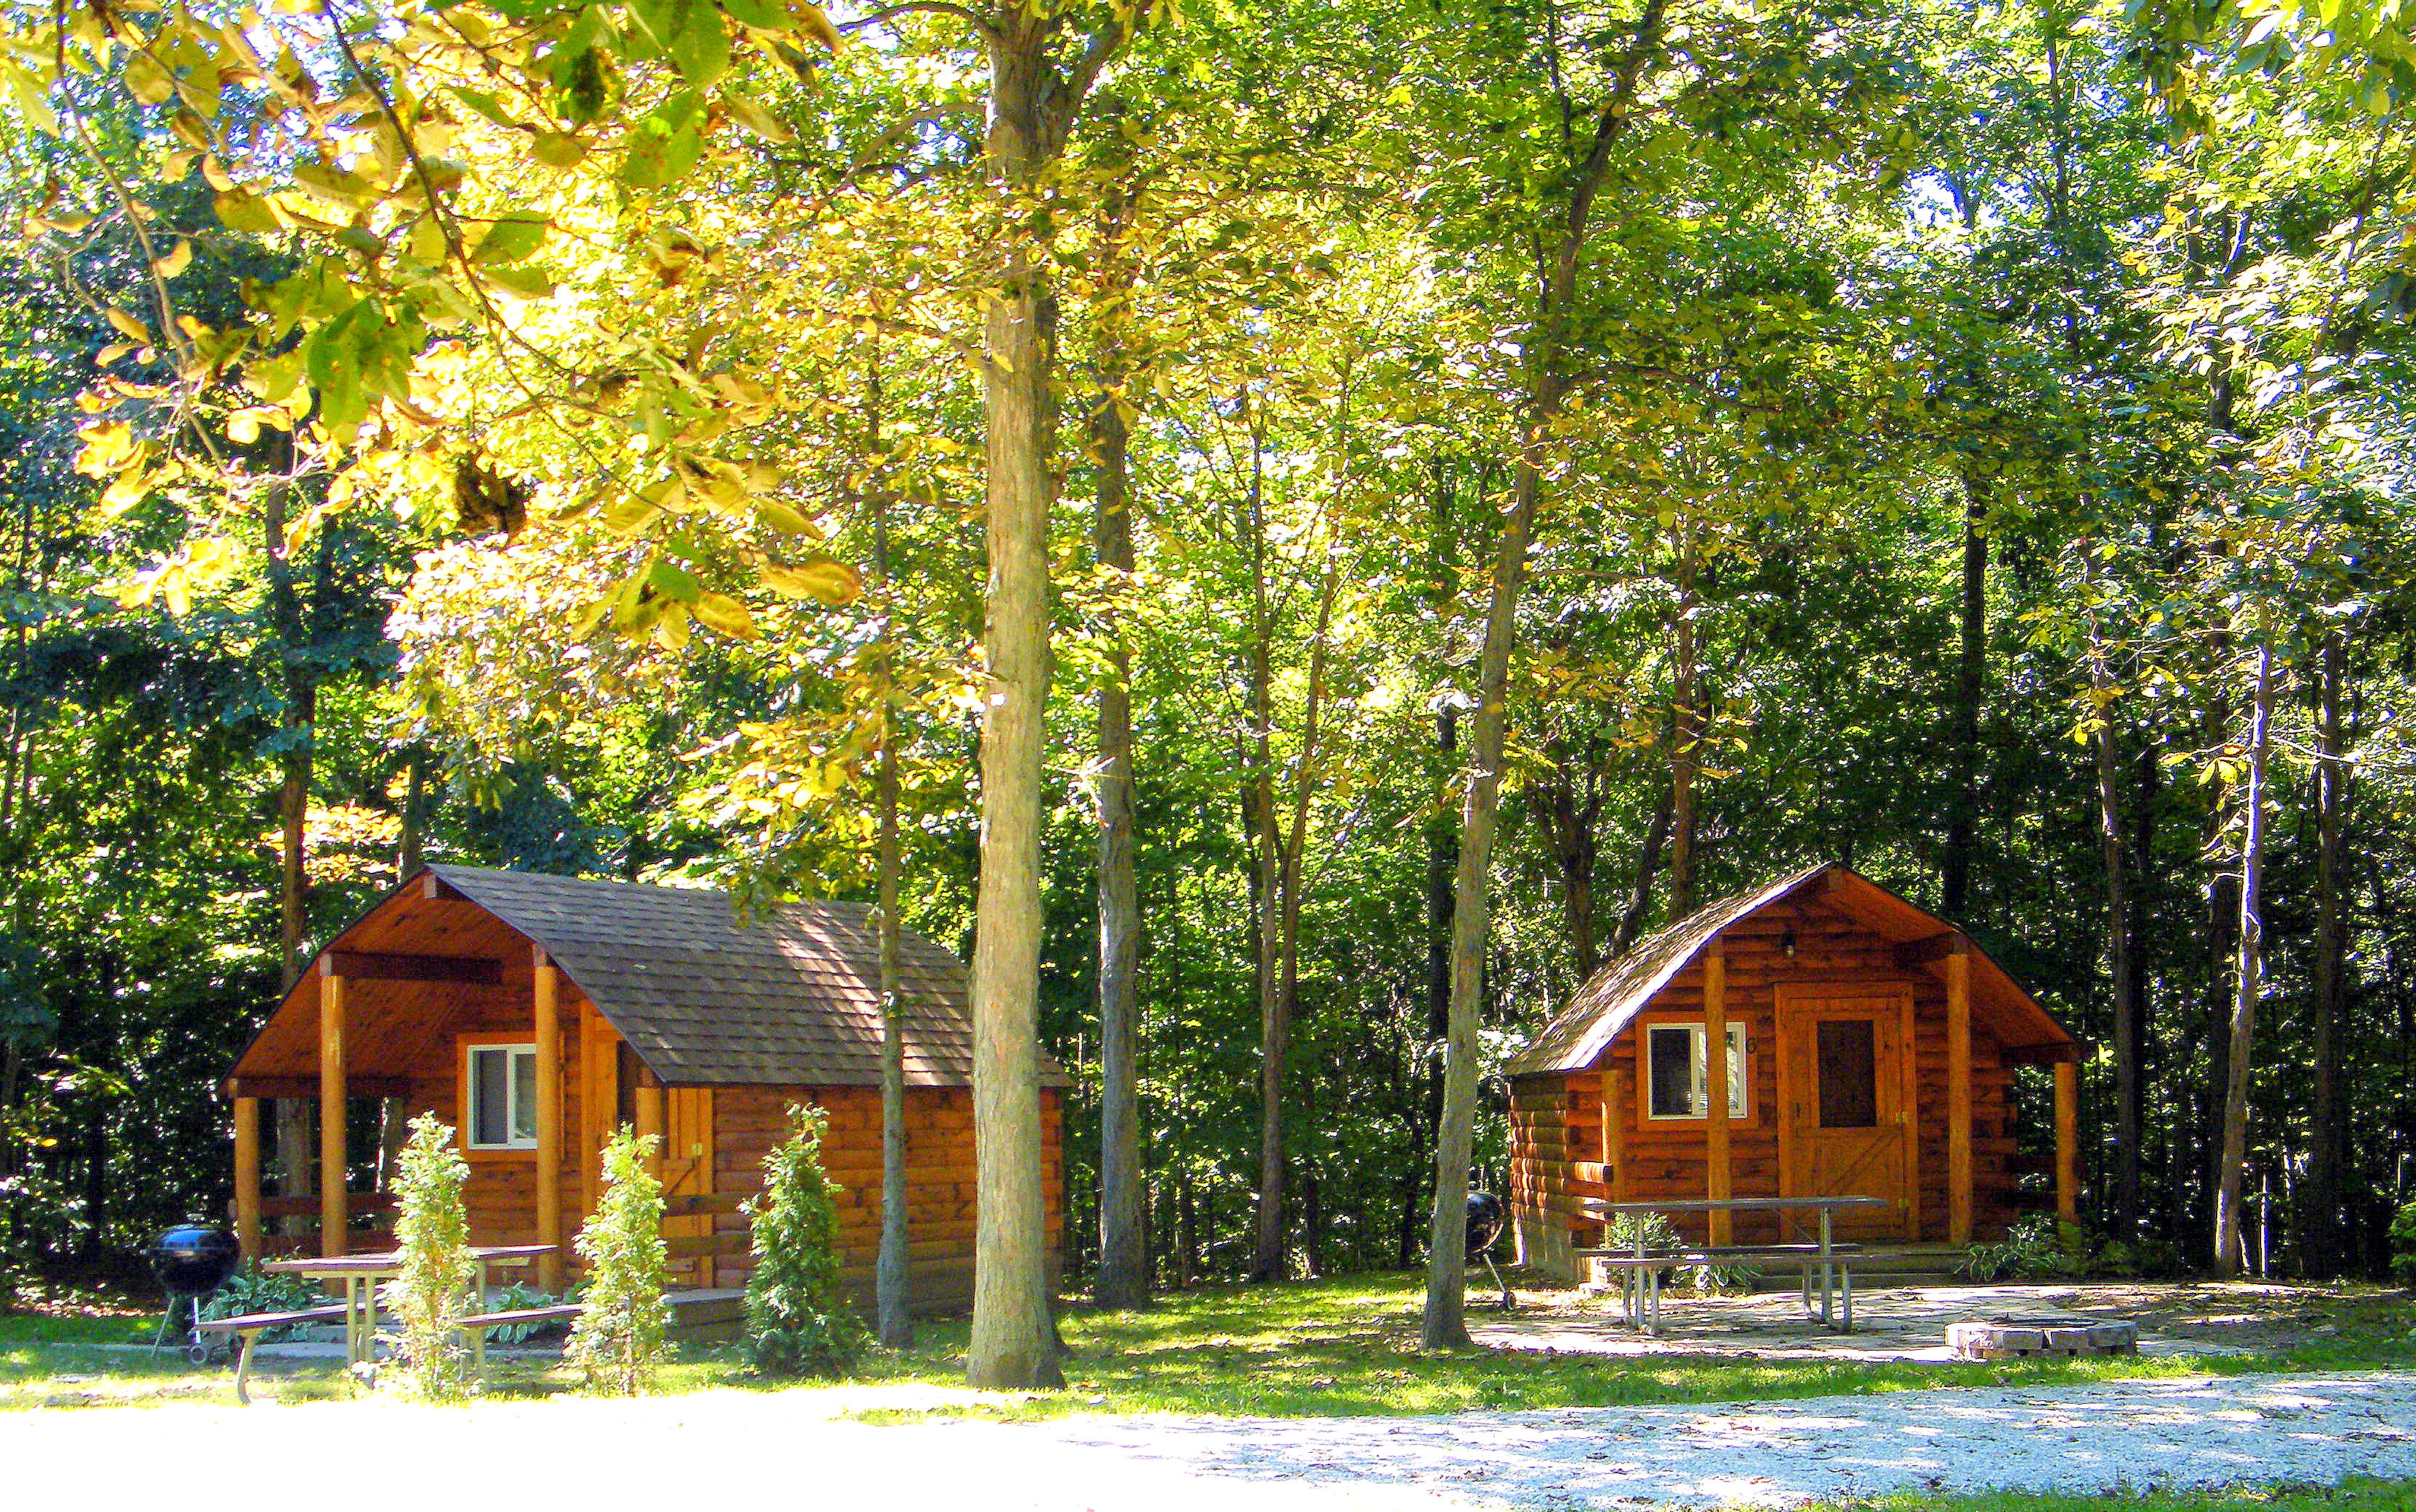 Campers-Cove-Campground-Rental-Cabins